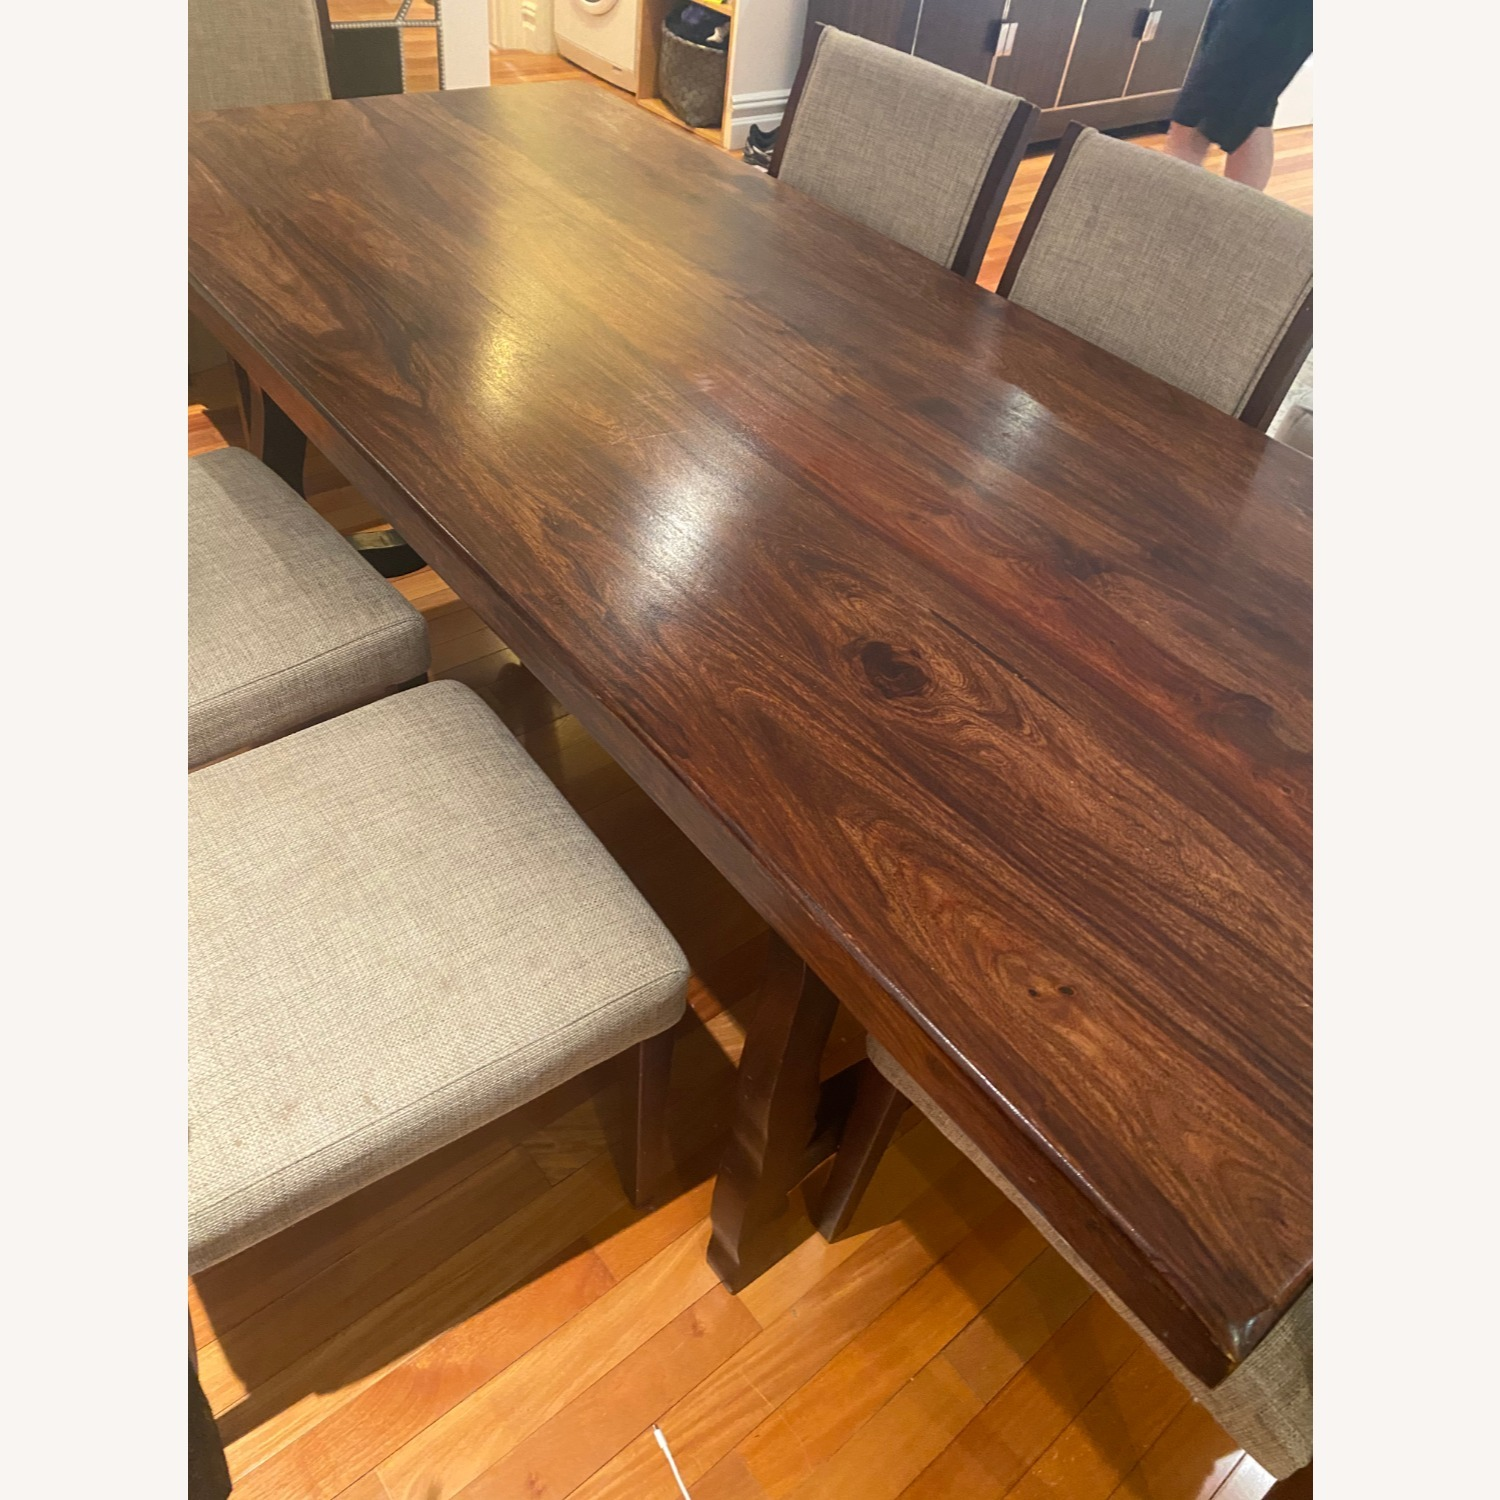 Pier 1 Imports Dark Wood Dining Table, Seats 6 - image-8